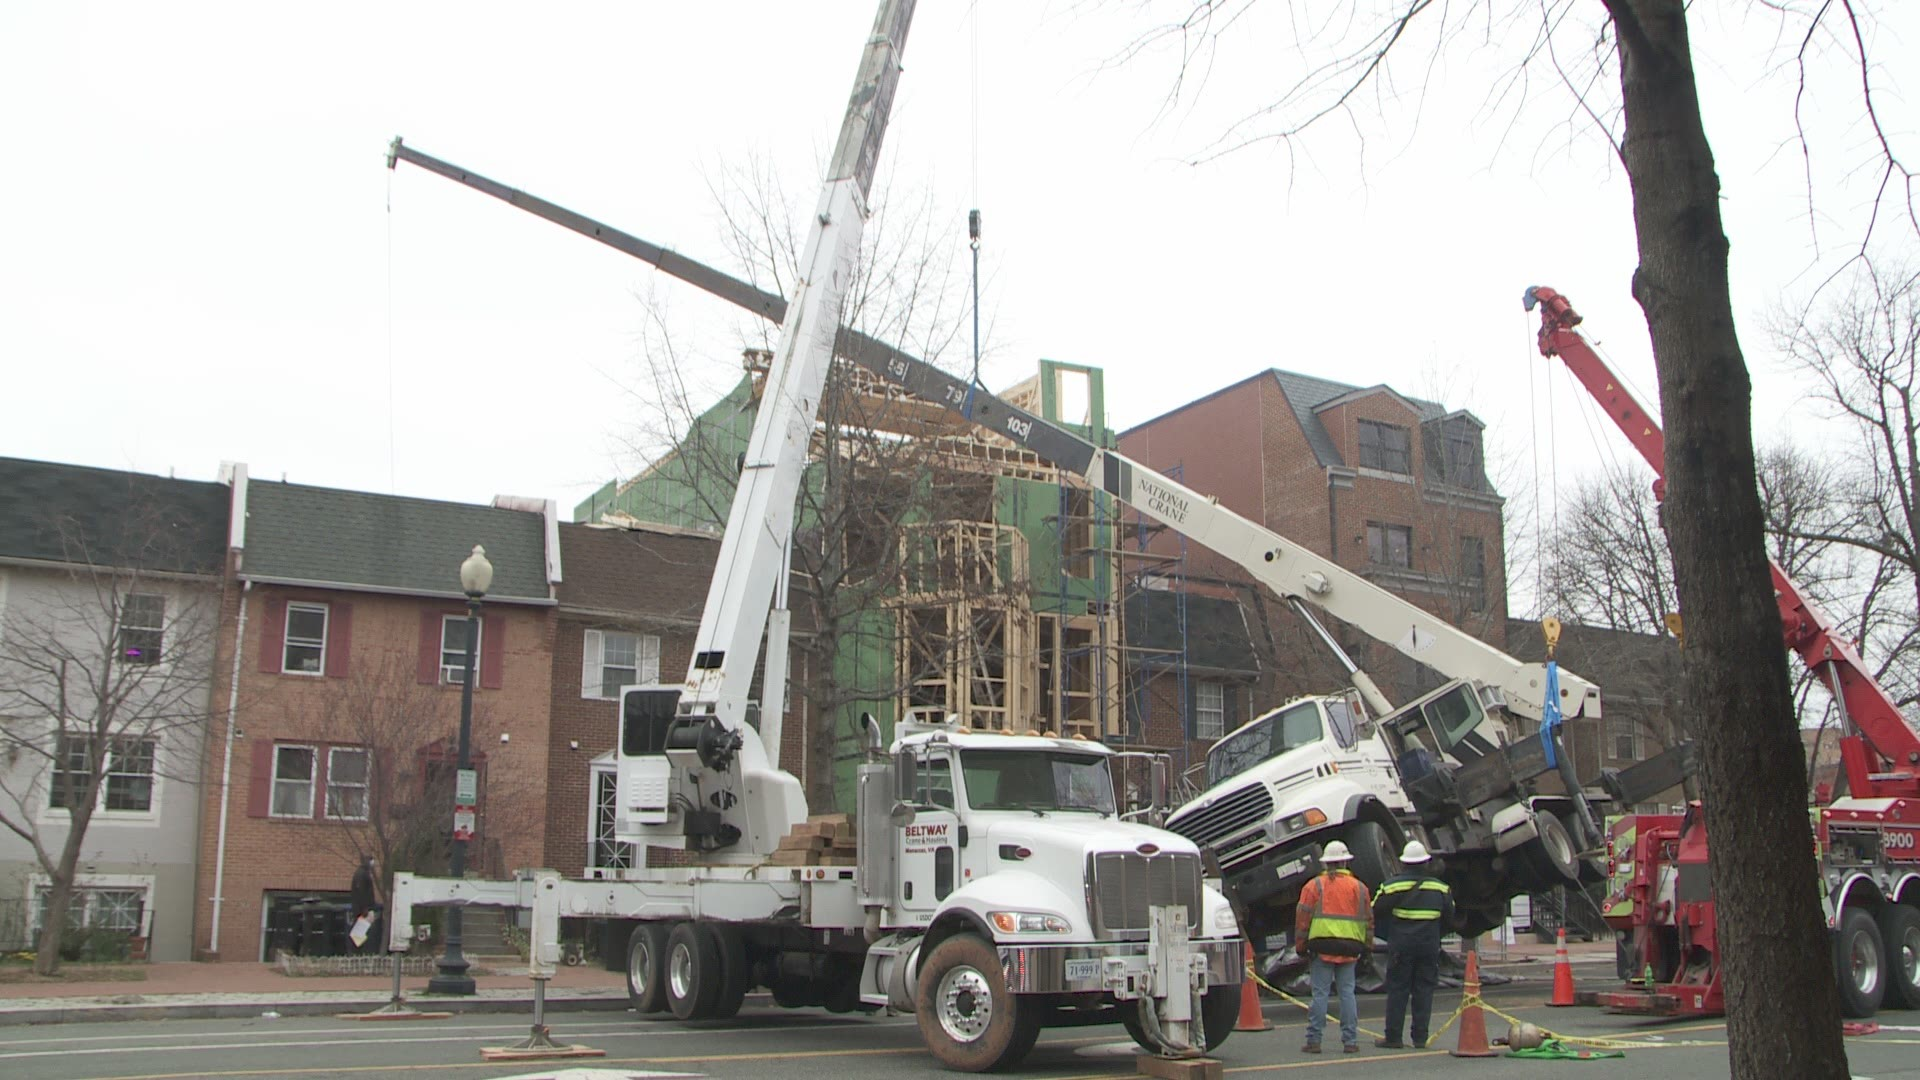 Construction Crane Slams Roof Of House In Nw Dc Crews Rescue Injured Worker Wusa9 Com